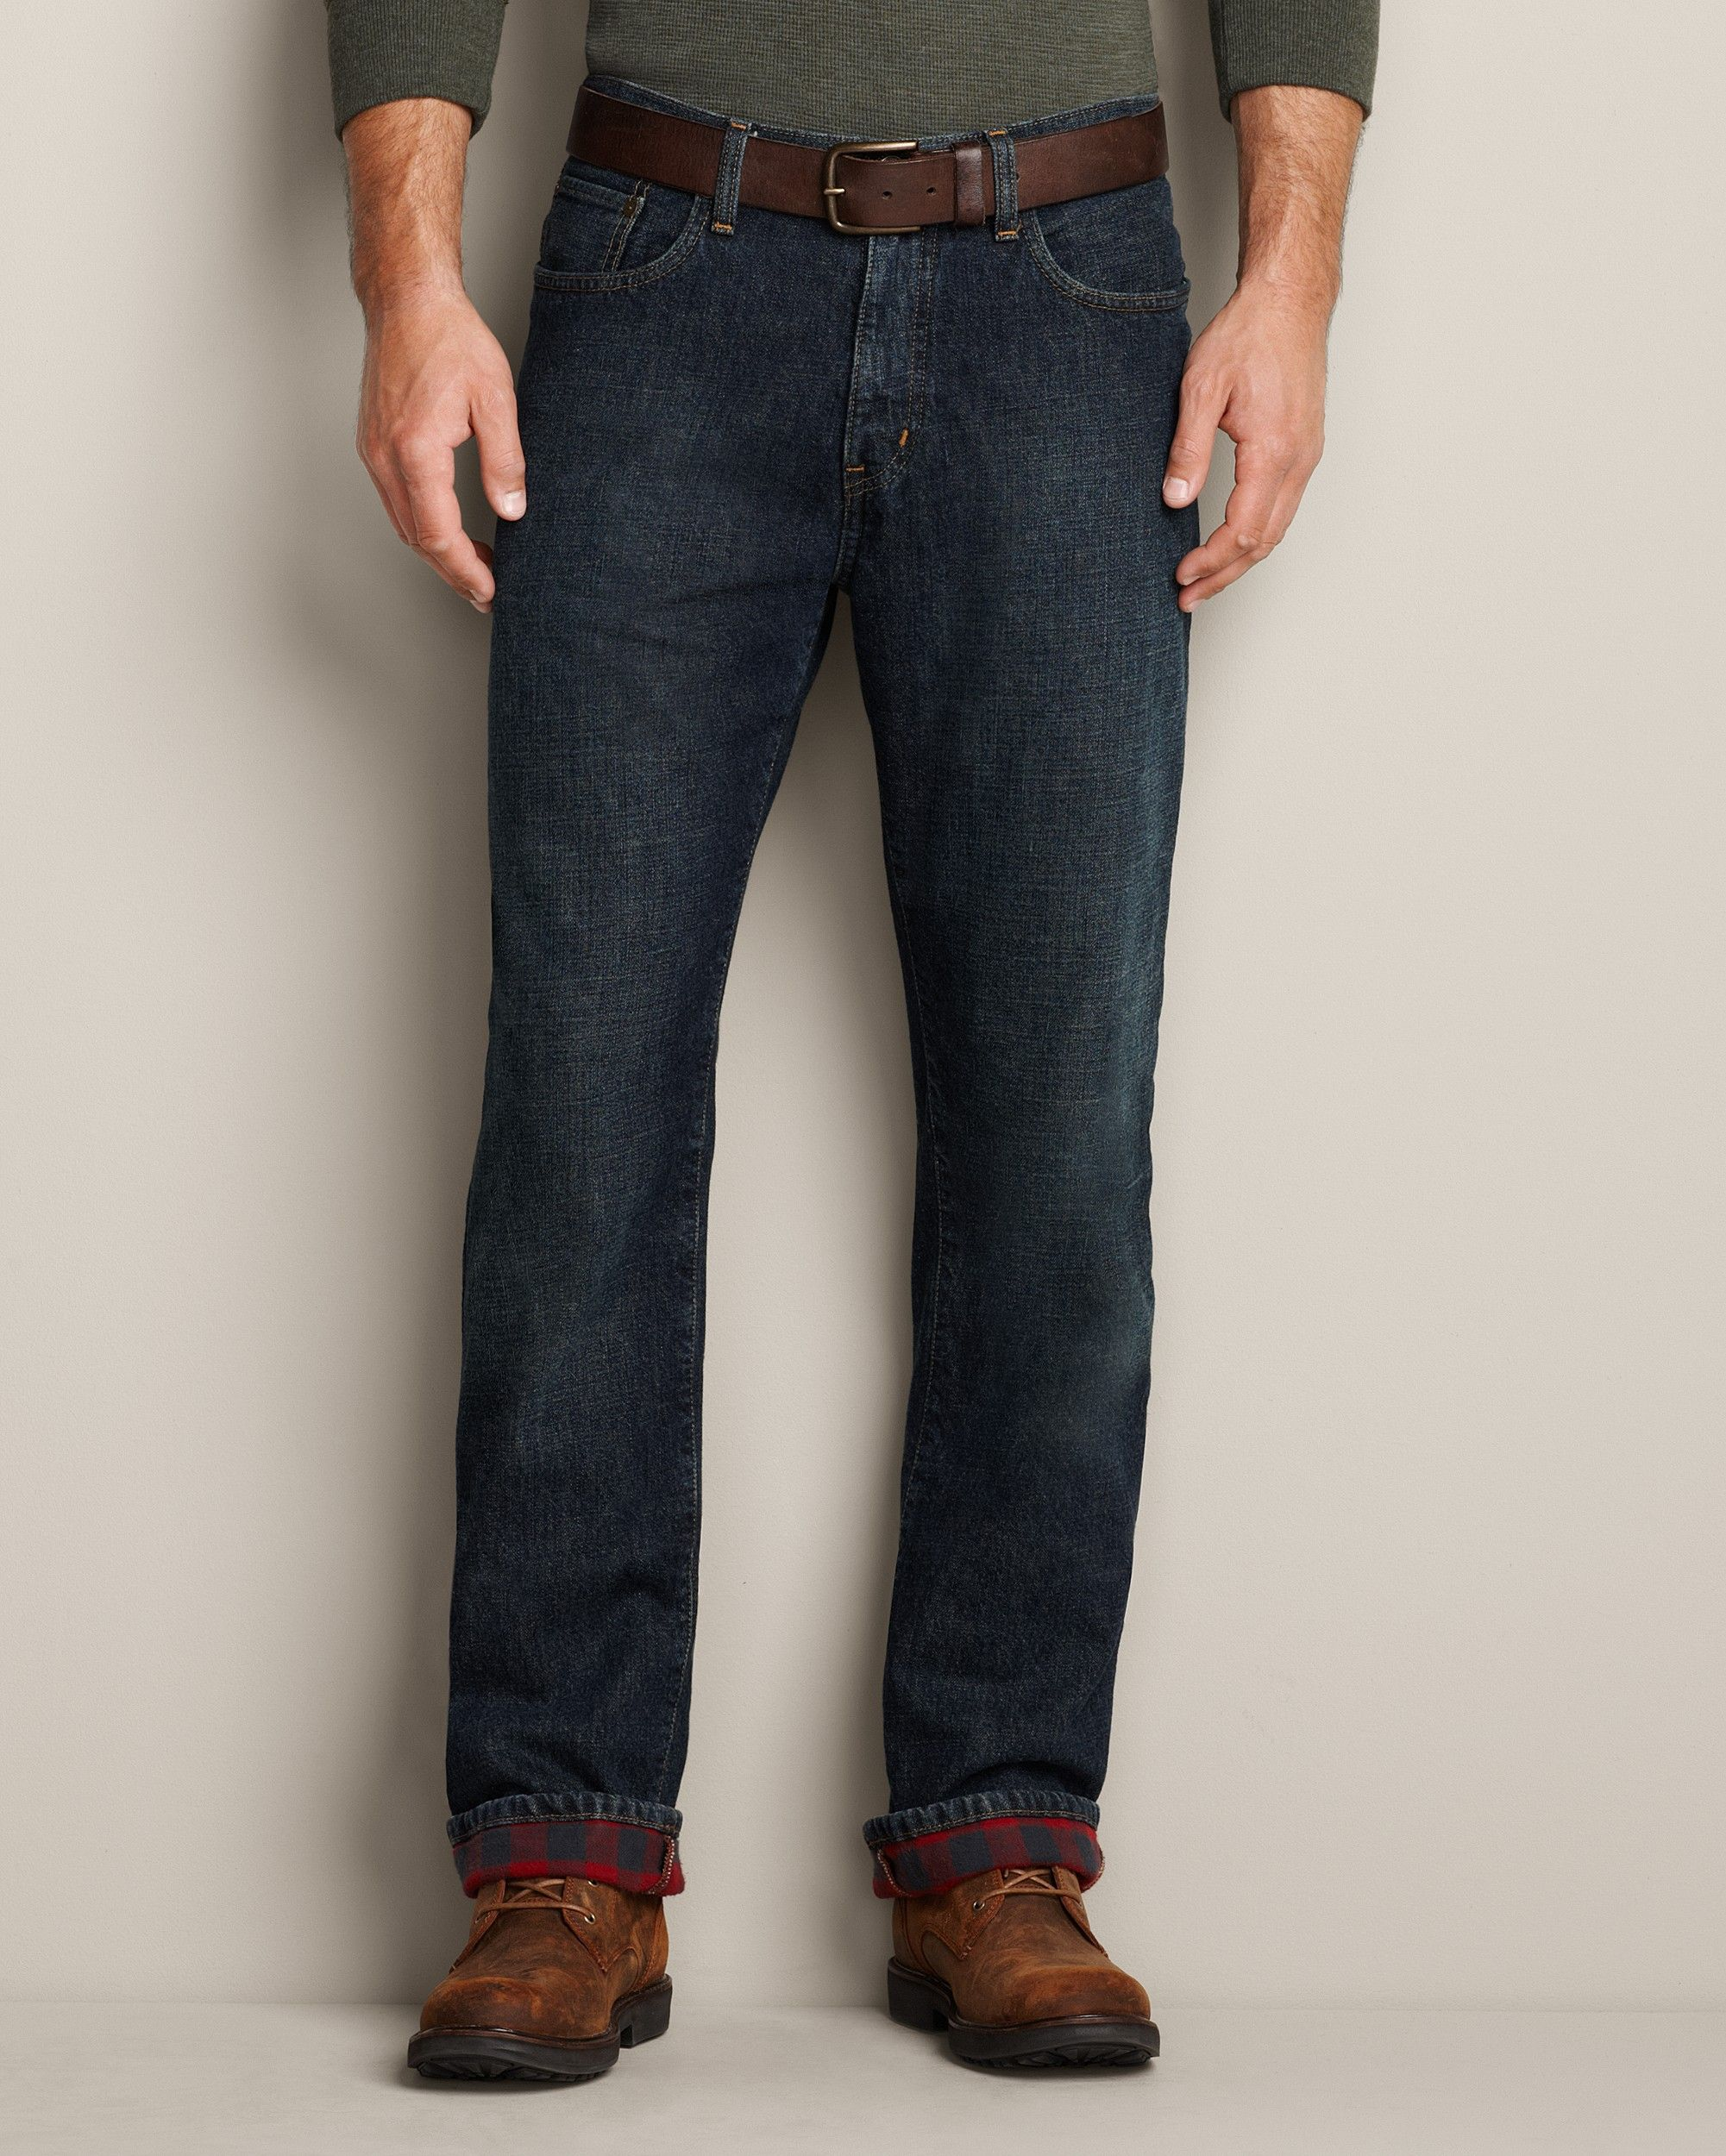 Lined Bauer69 Flannel Fit JeansEddie Even Relaxed 95 Rugged l1uKJ3FcT5